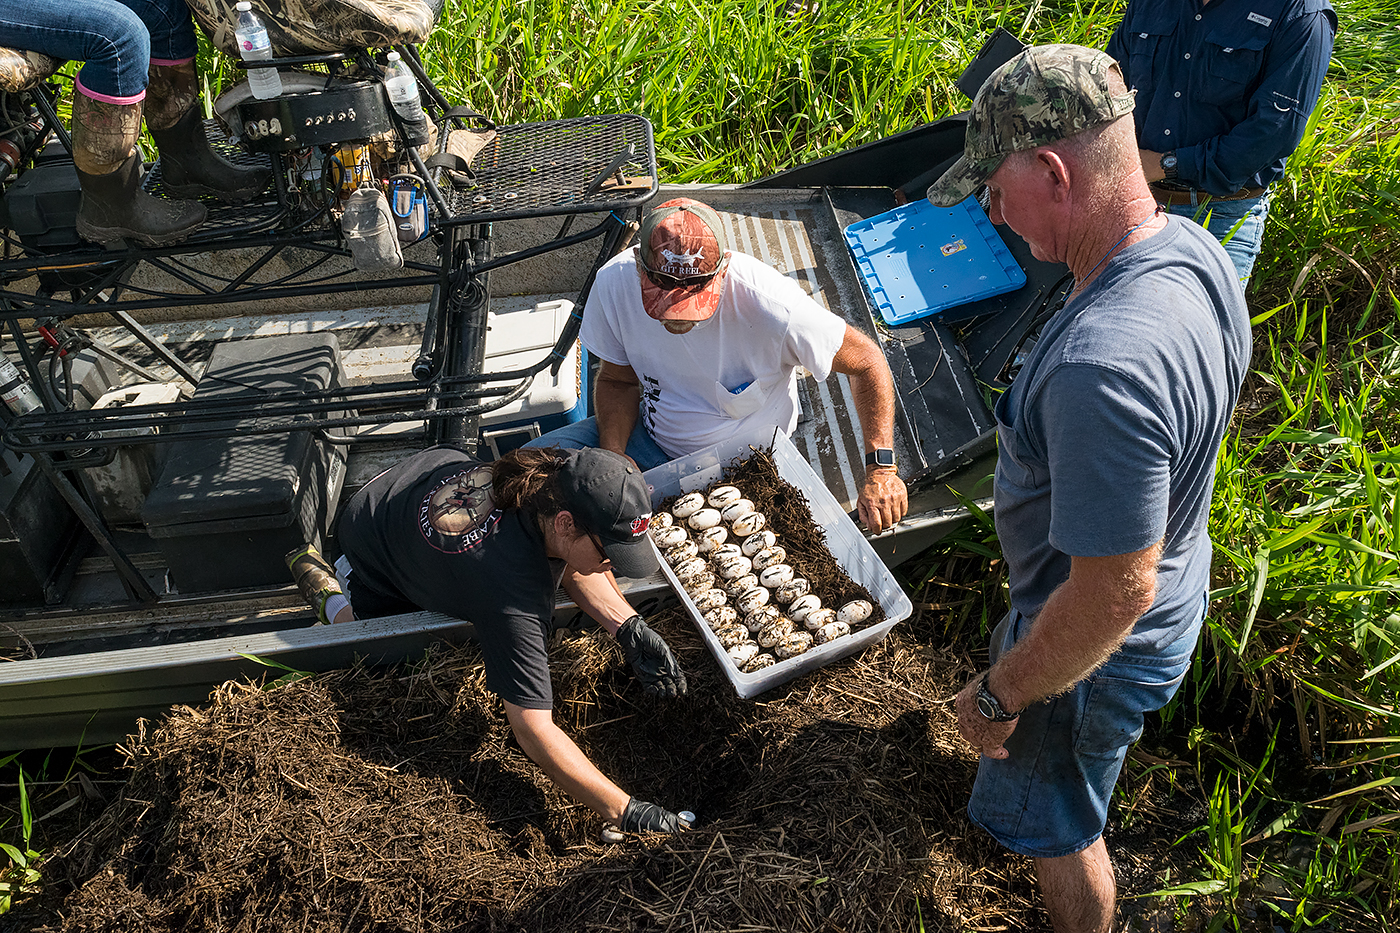 People harvesting alligator eggs from an airboat